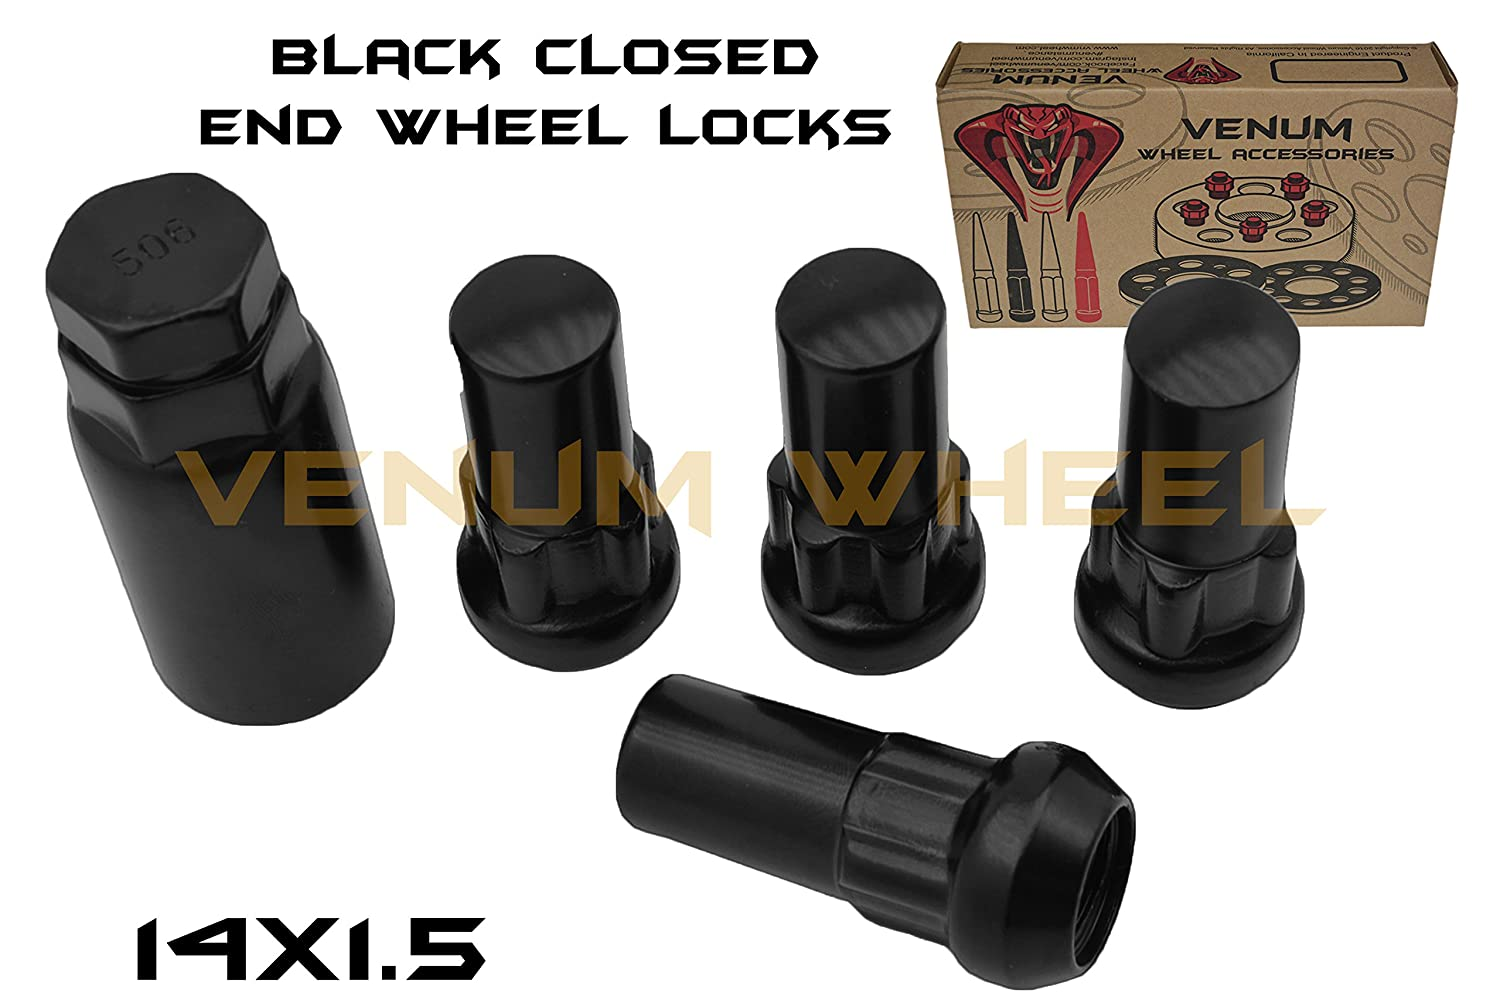 1 Key For Aftermarket Wheels Only Works With Ford Chevy GMC Dodge RAM Jeep Toyota 4pc M14x1.5 2 Tall Black Anti-Theft Wheel Locking Lug Nuts